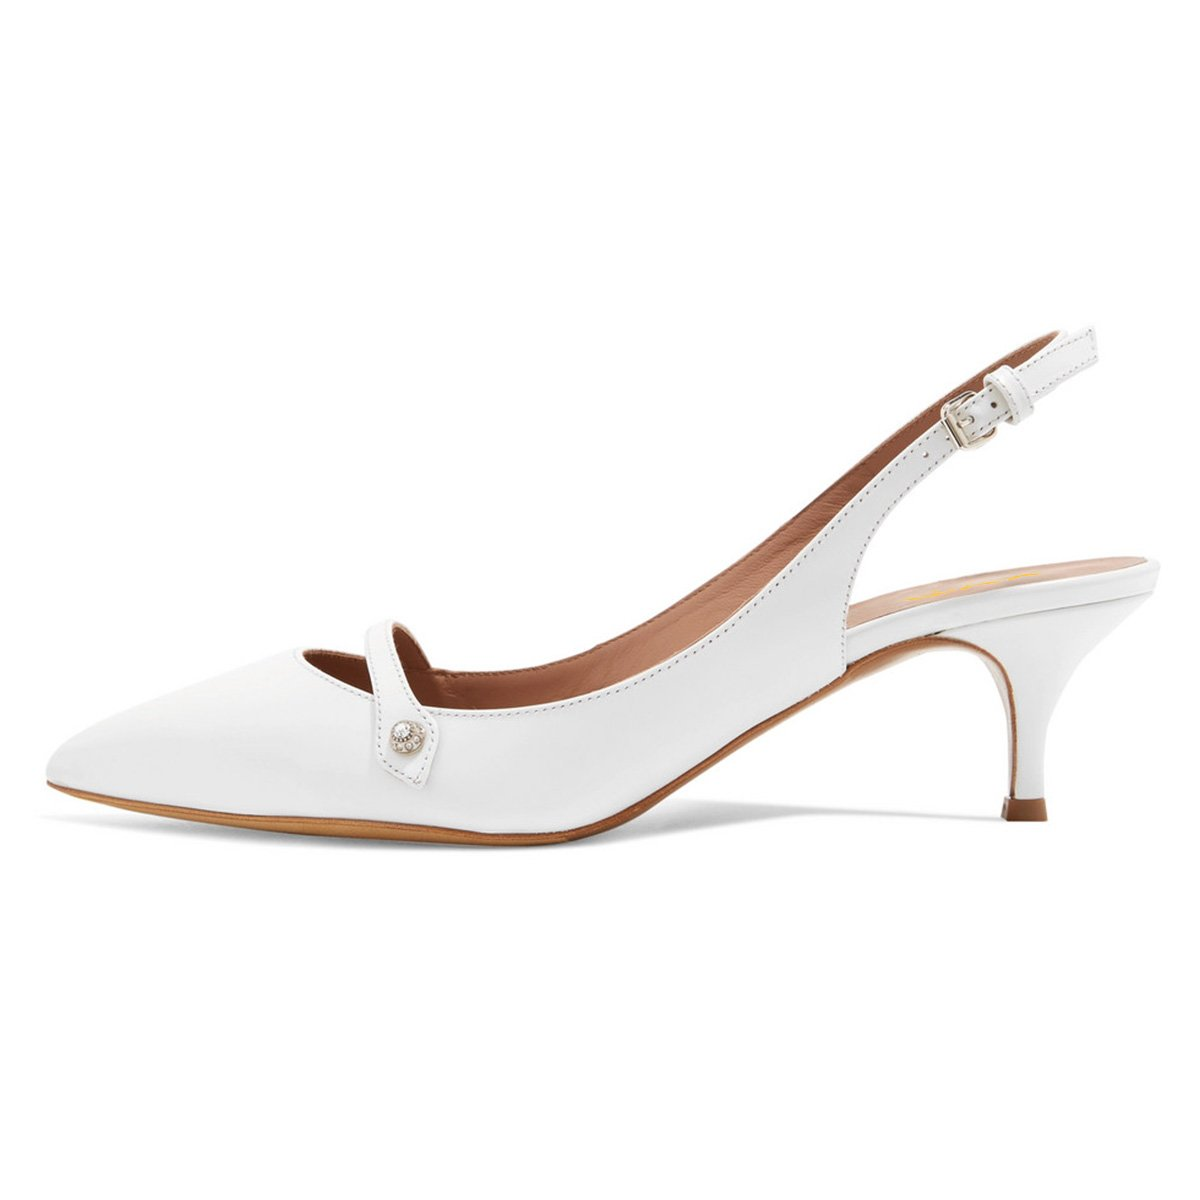 VOSTEY Women Low Heel Dress Shoes Kitten Heel Slingback